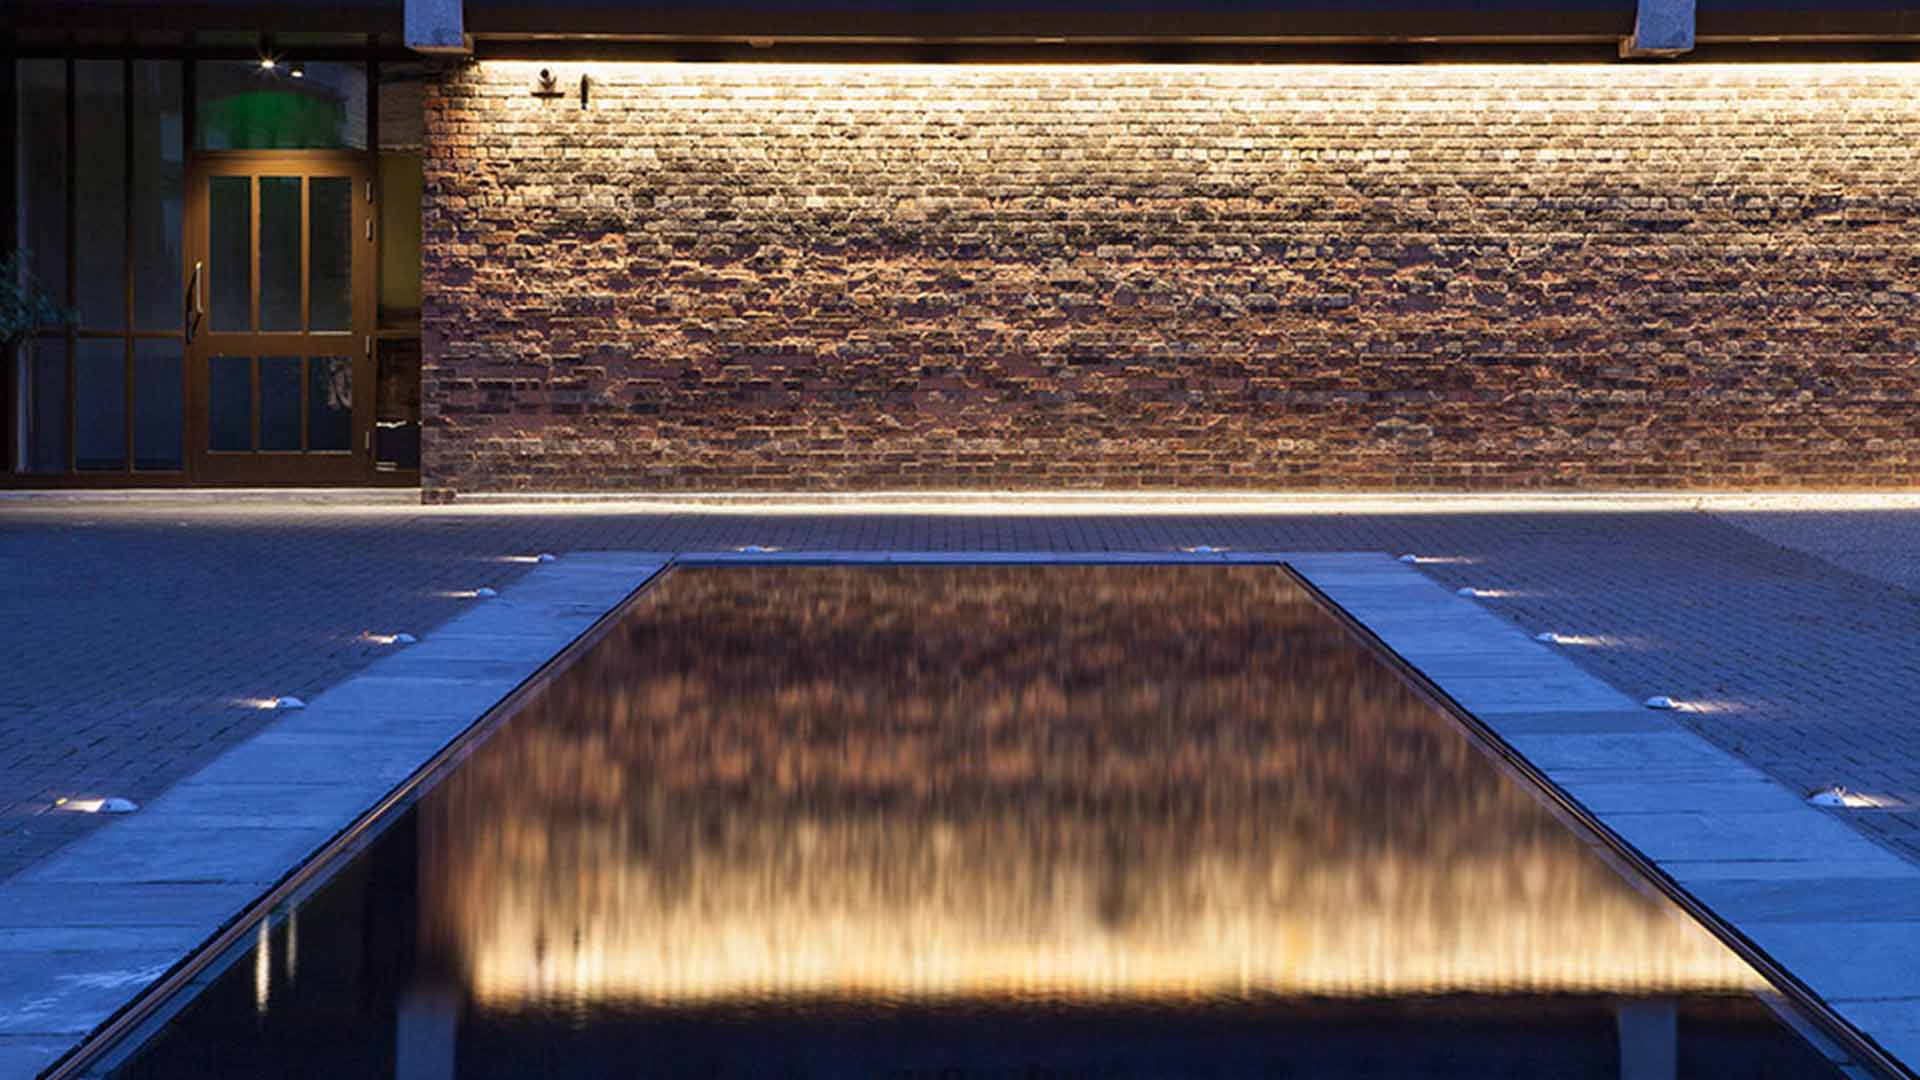 Reflection Pool Courtyard Brickwork Illumination Listed Building Nulty